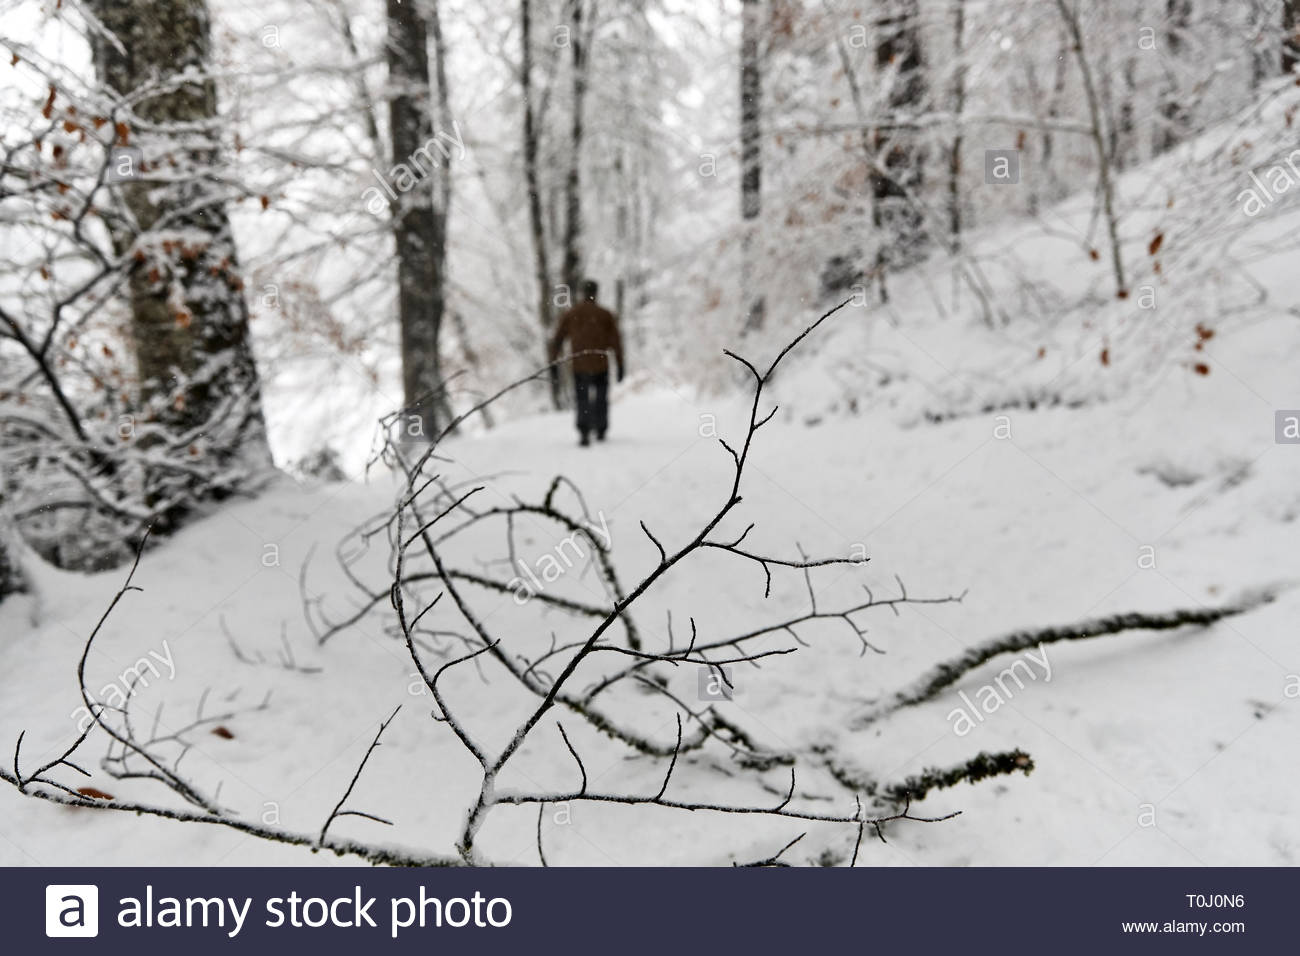 A man in countrysides rural winter snowing scene - Stock Image